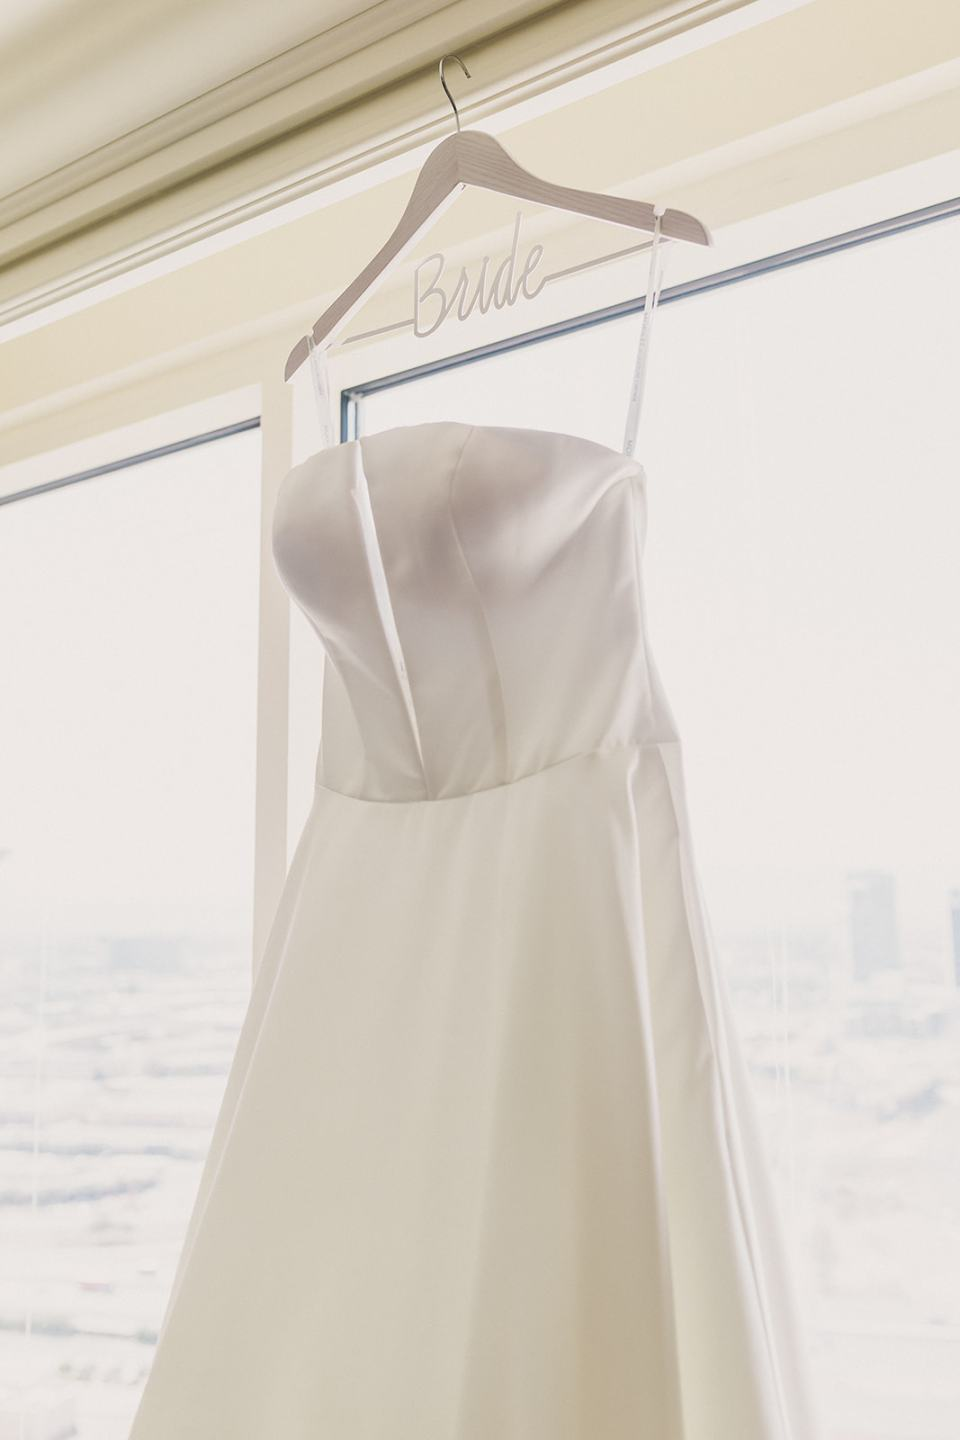 bride's dress hangs in Las Vegas hotel